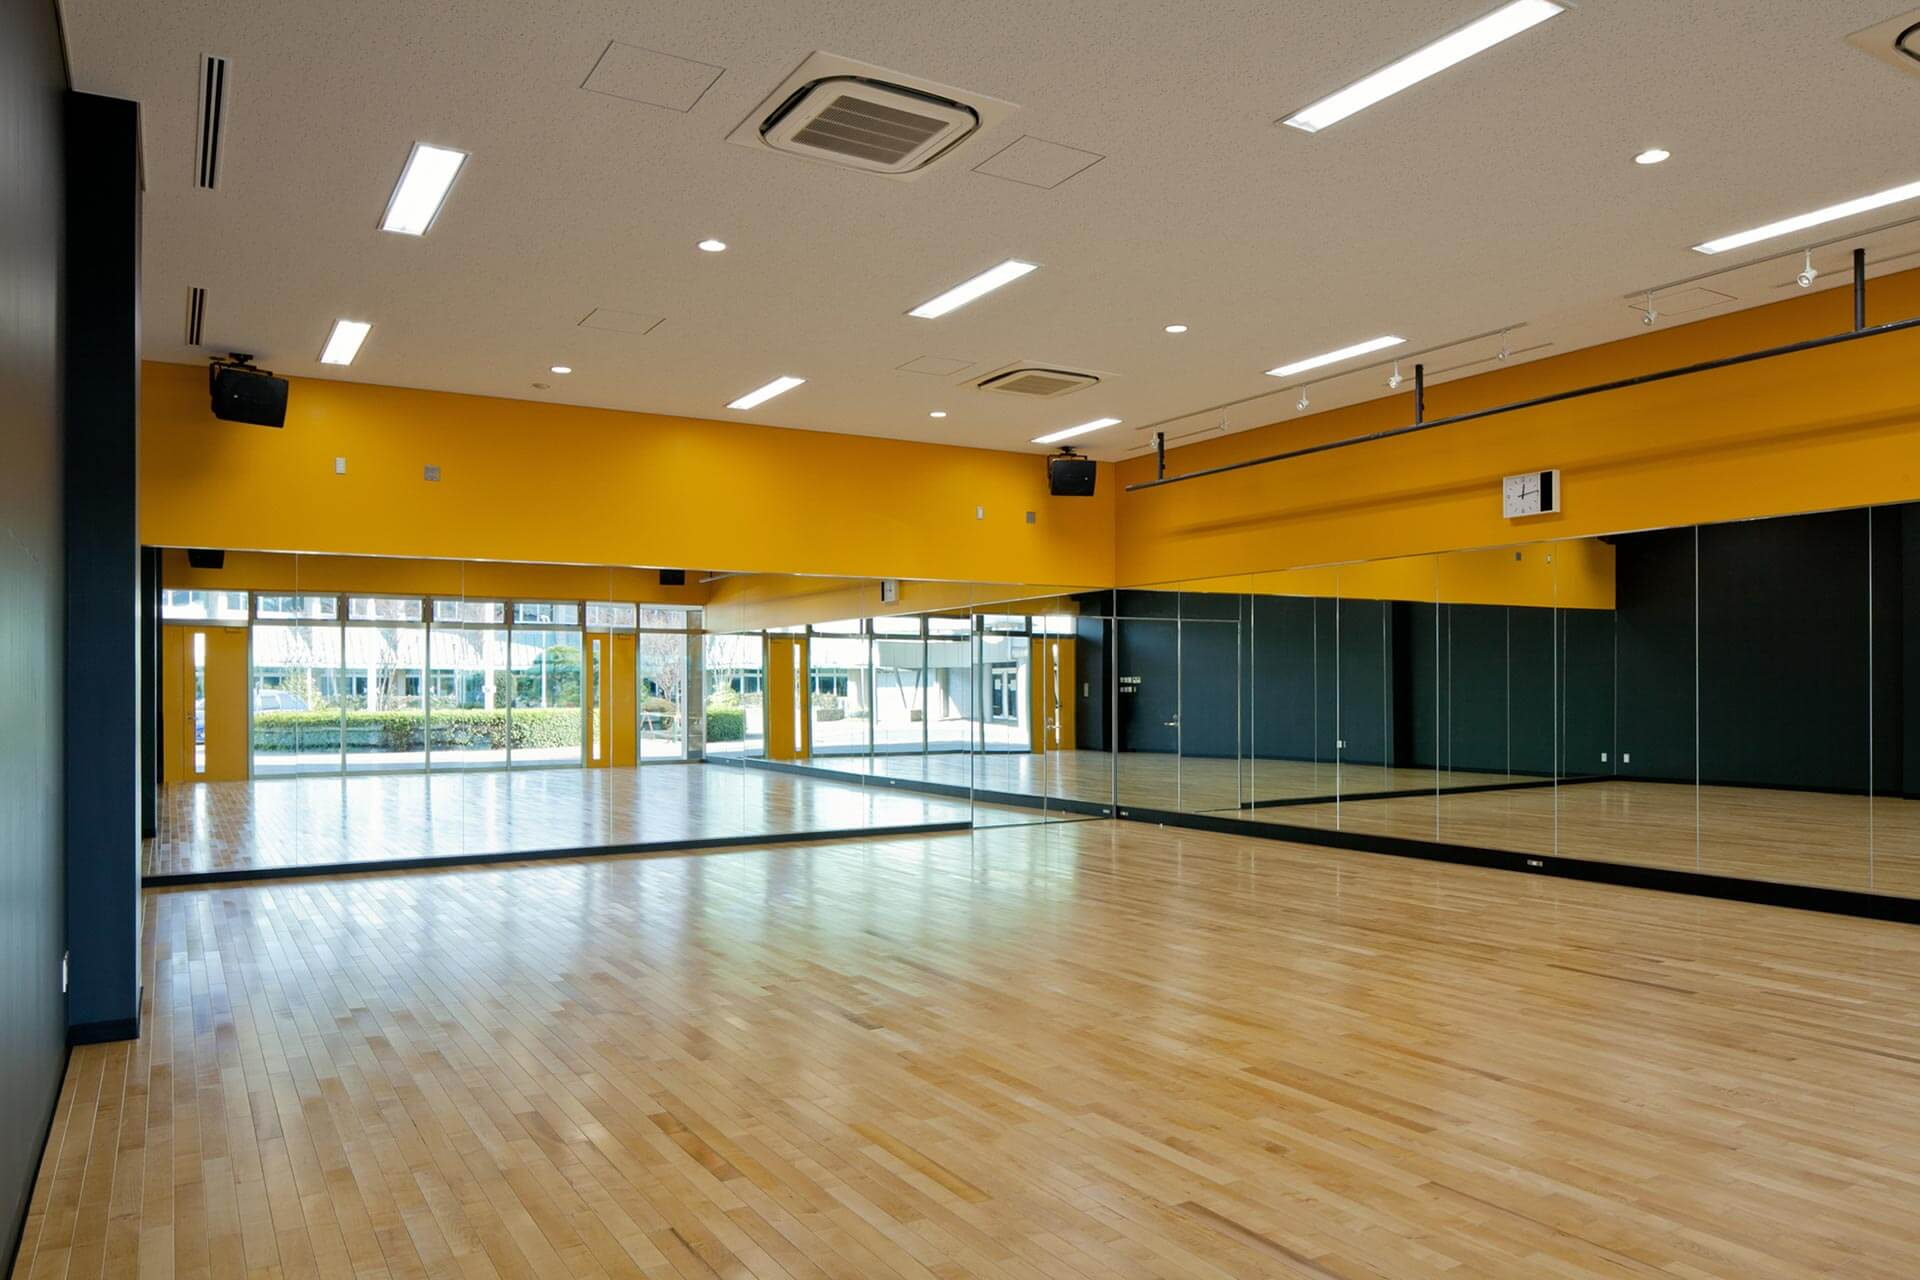 The ASIJ Dance Studio